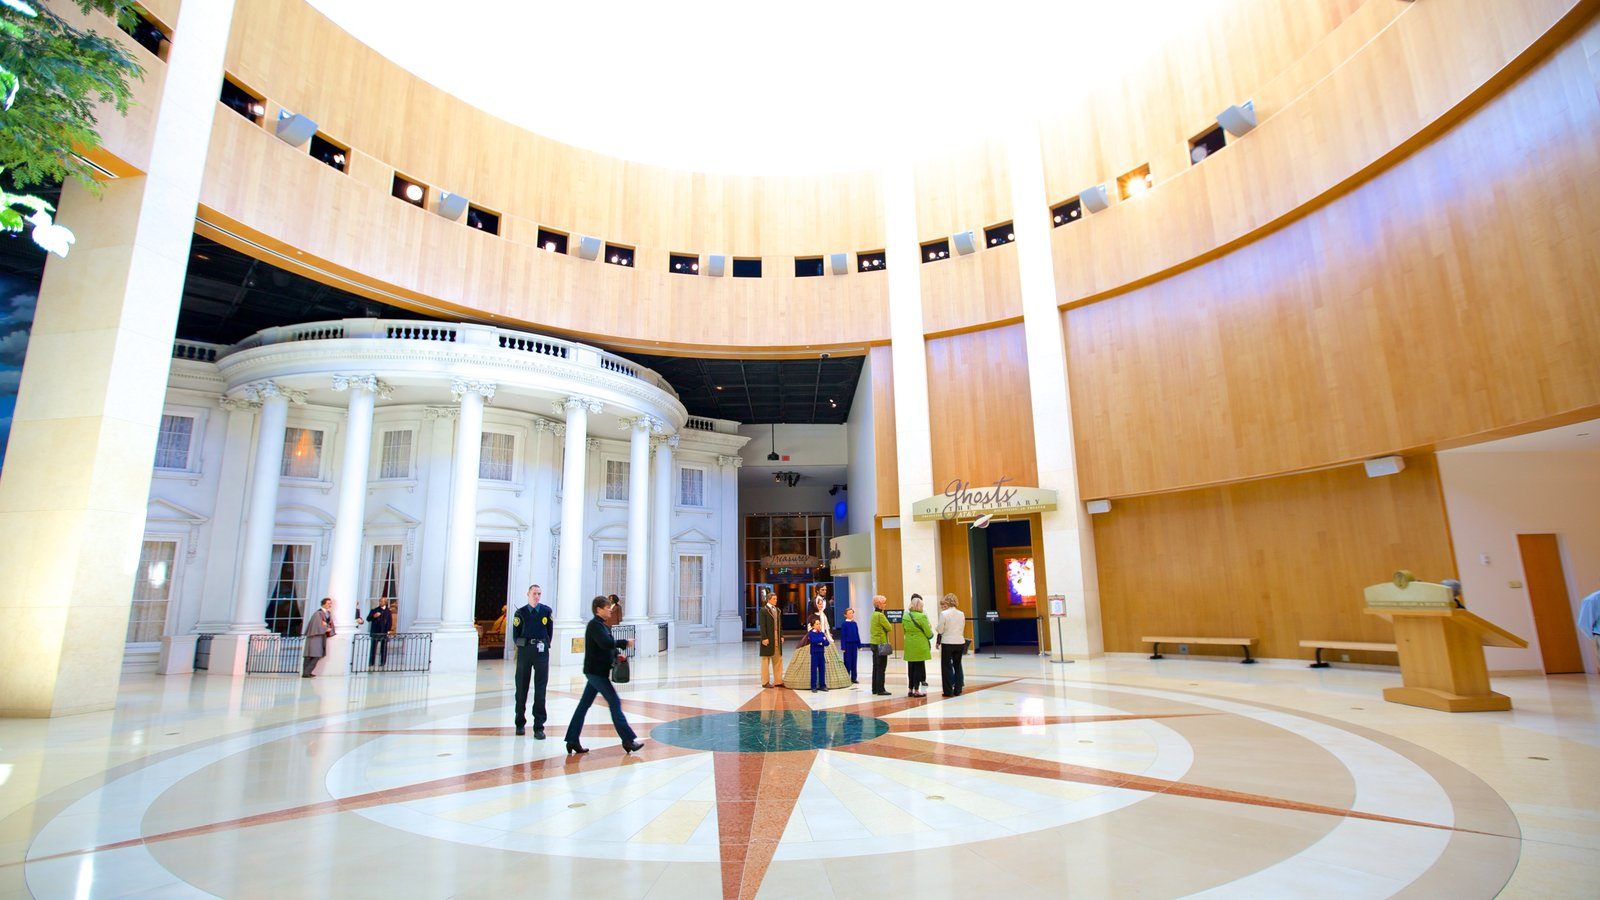 Abraham Lincoln Presidential Library and Museum showing interior views